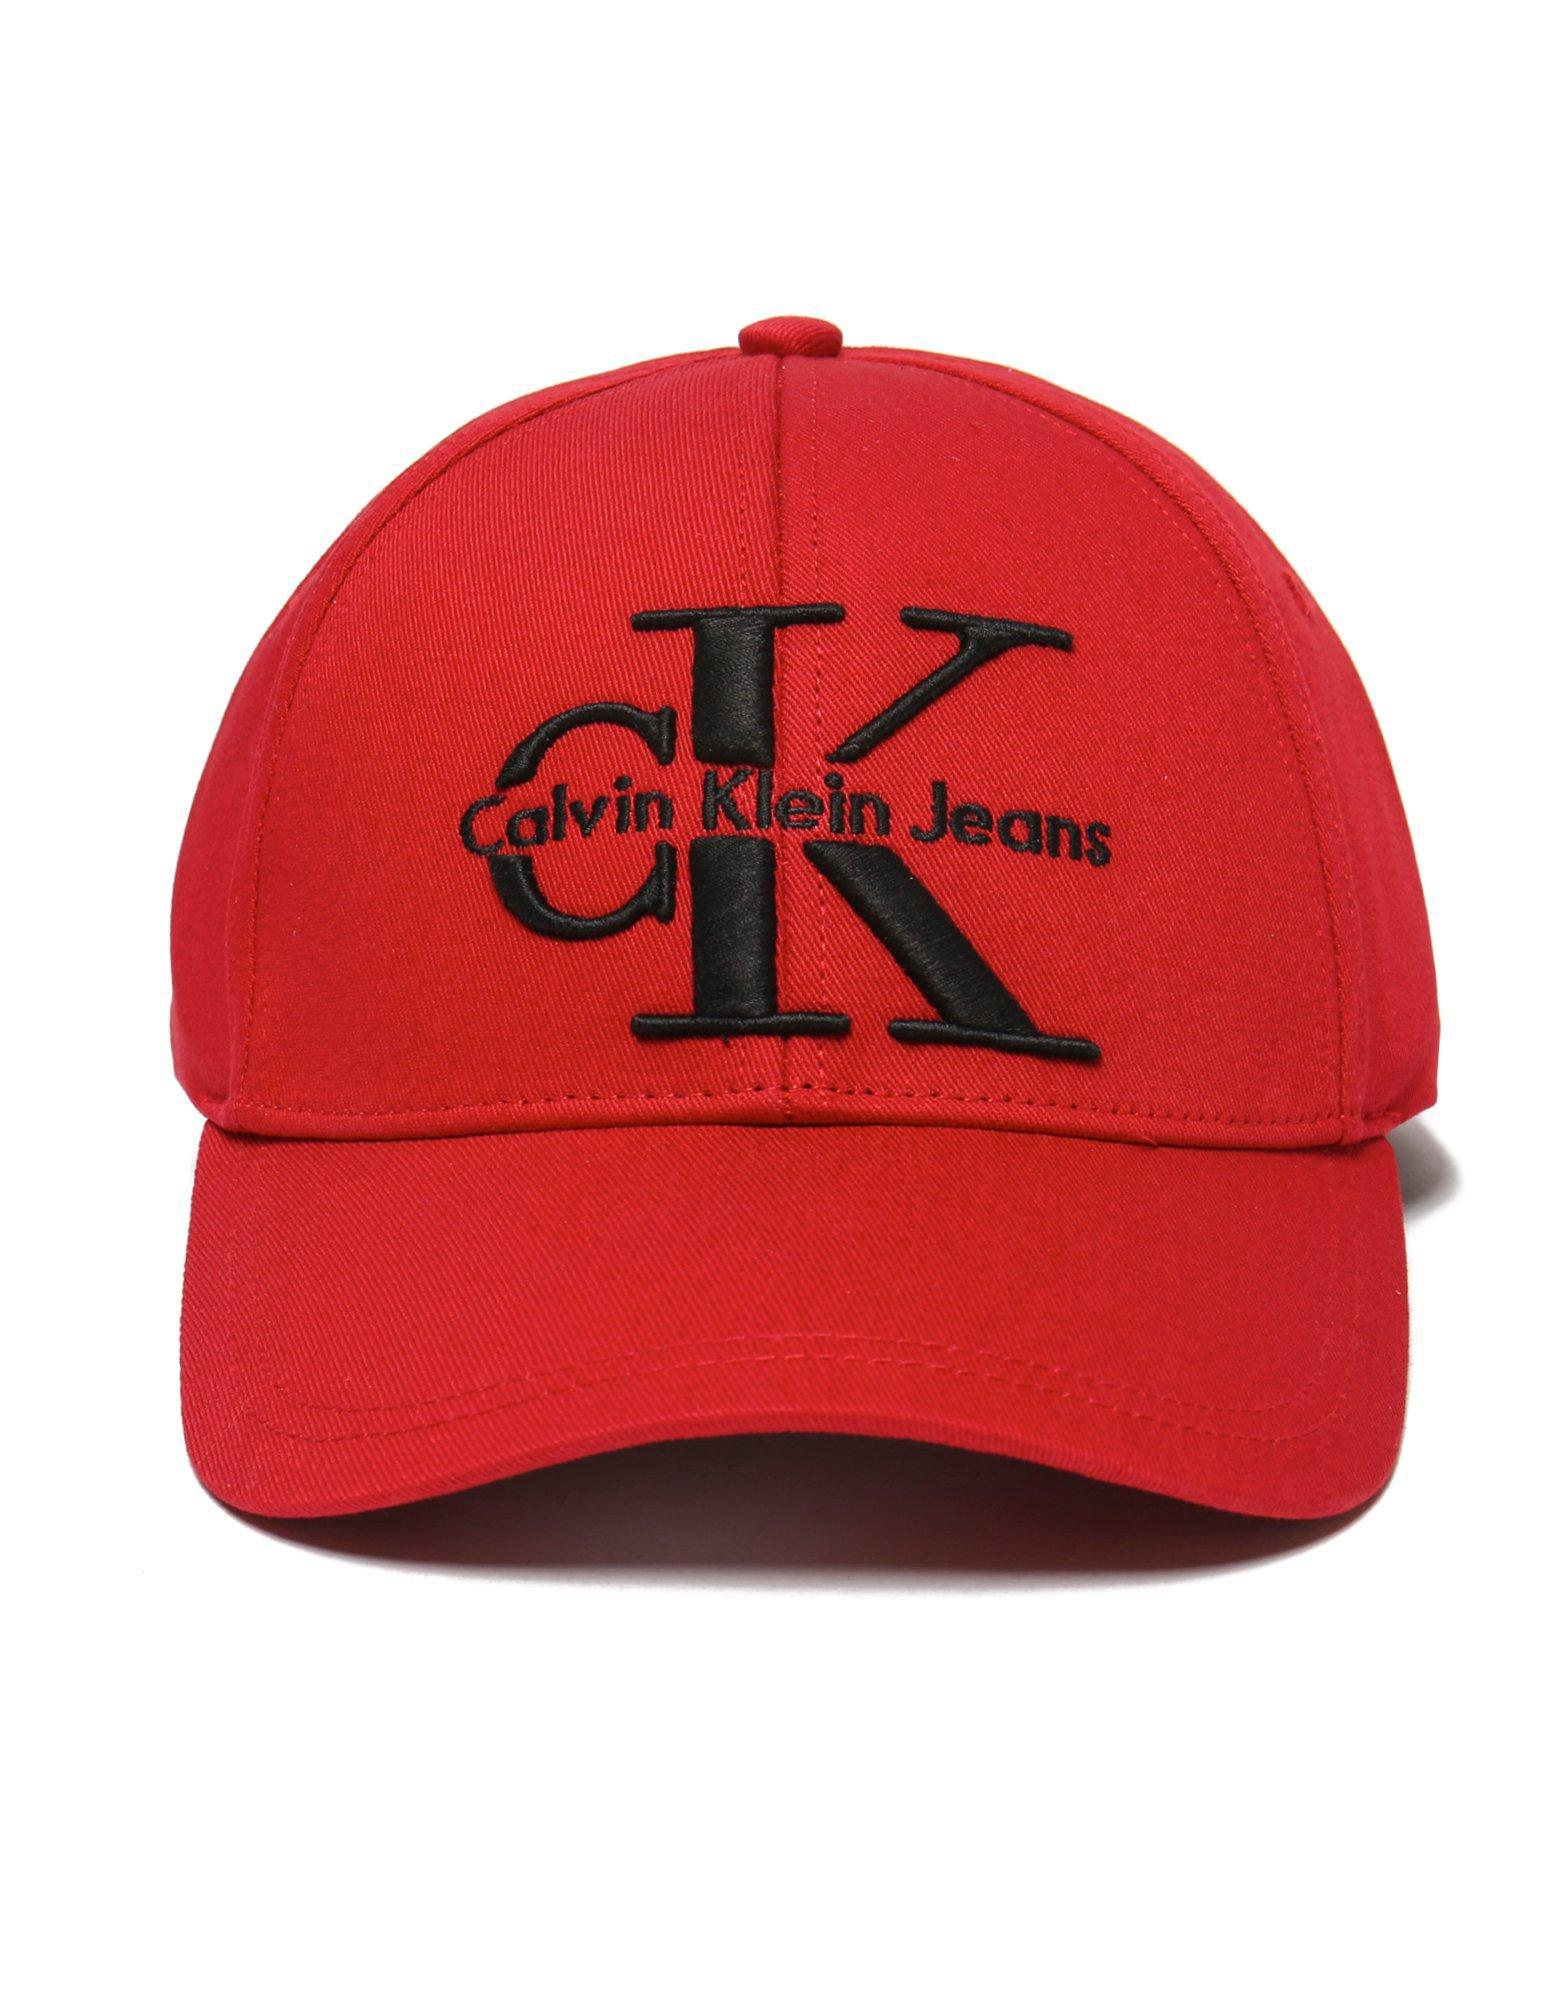 62a73925890 CALVIN KLEIN 205W39NYC Jeans Reissue Cap in Red for Men - Lyst